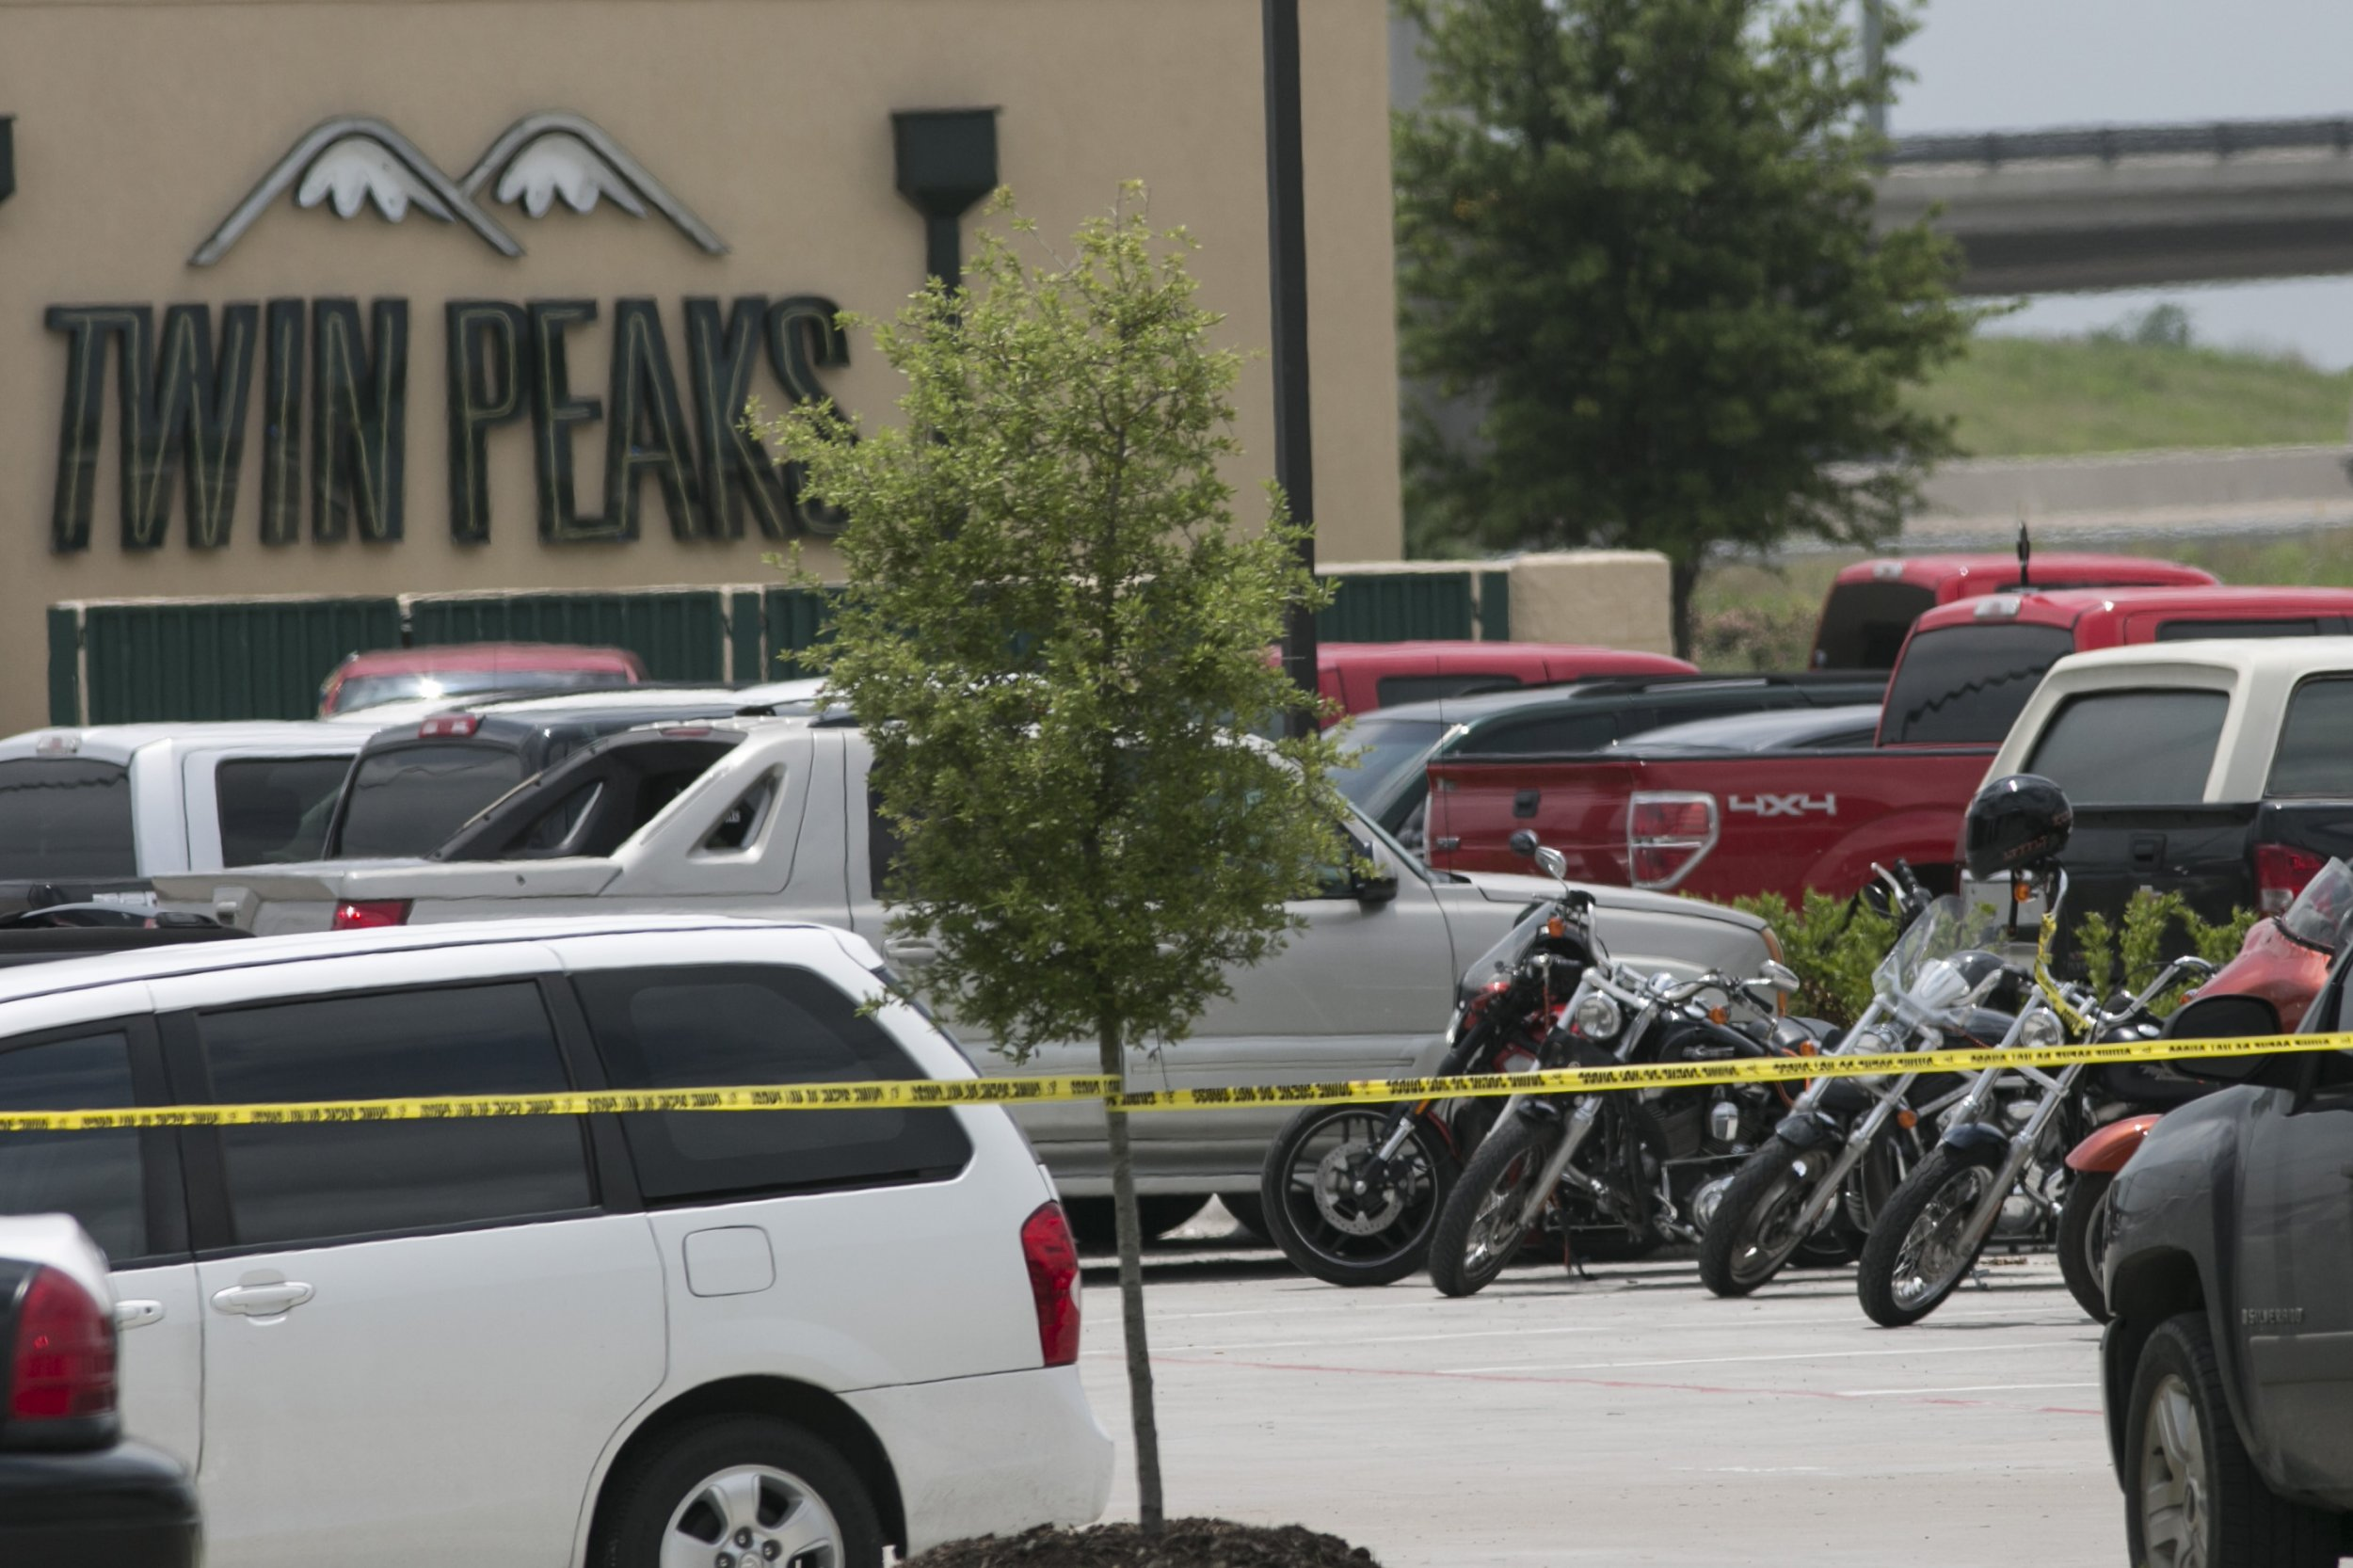 Three Biker Gang Members Held After Waco Shooting